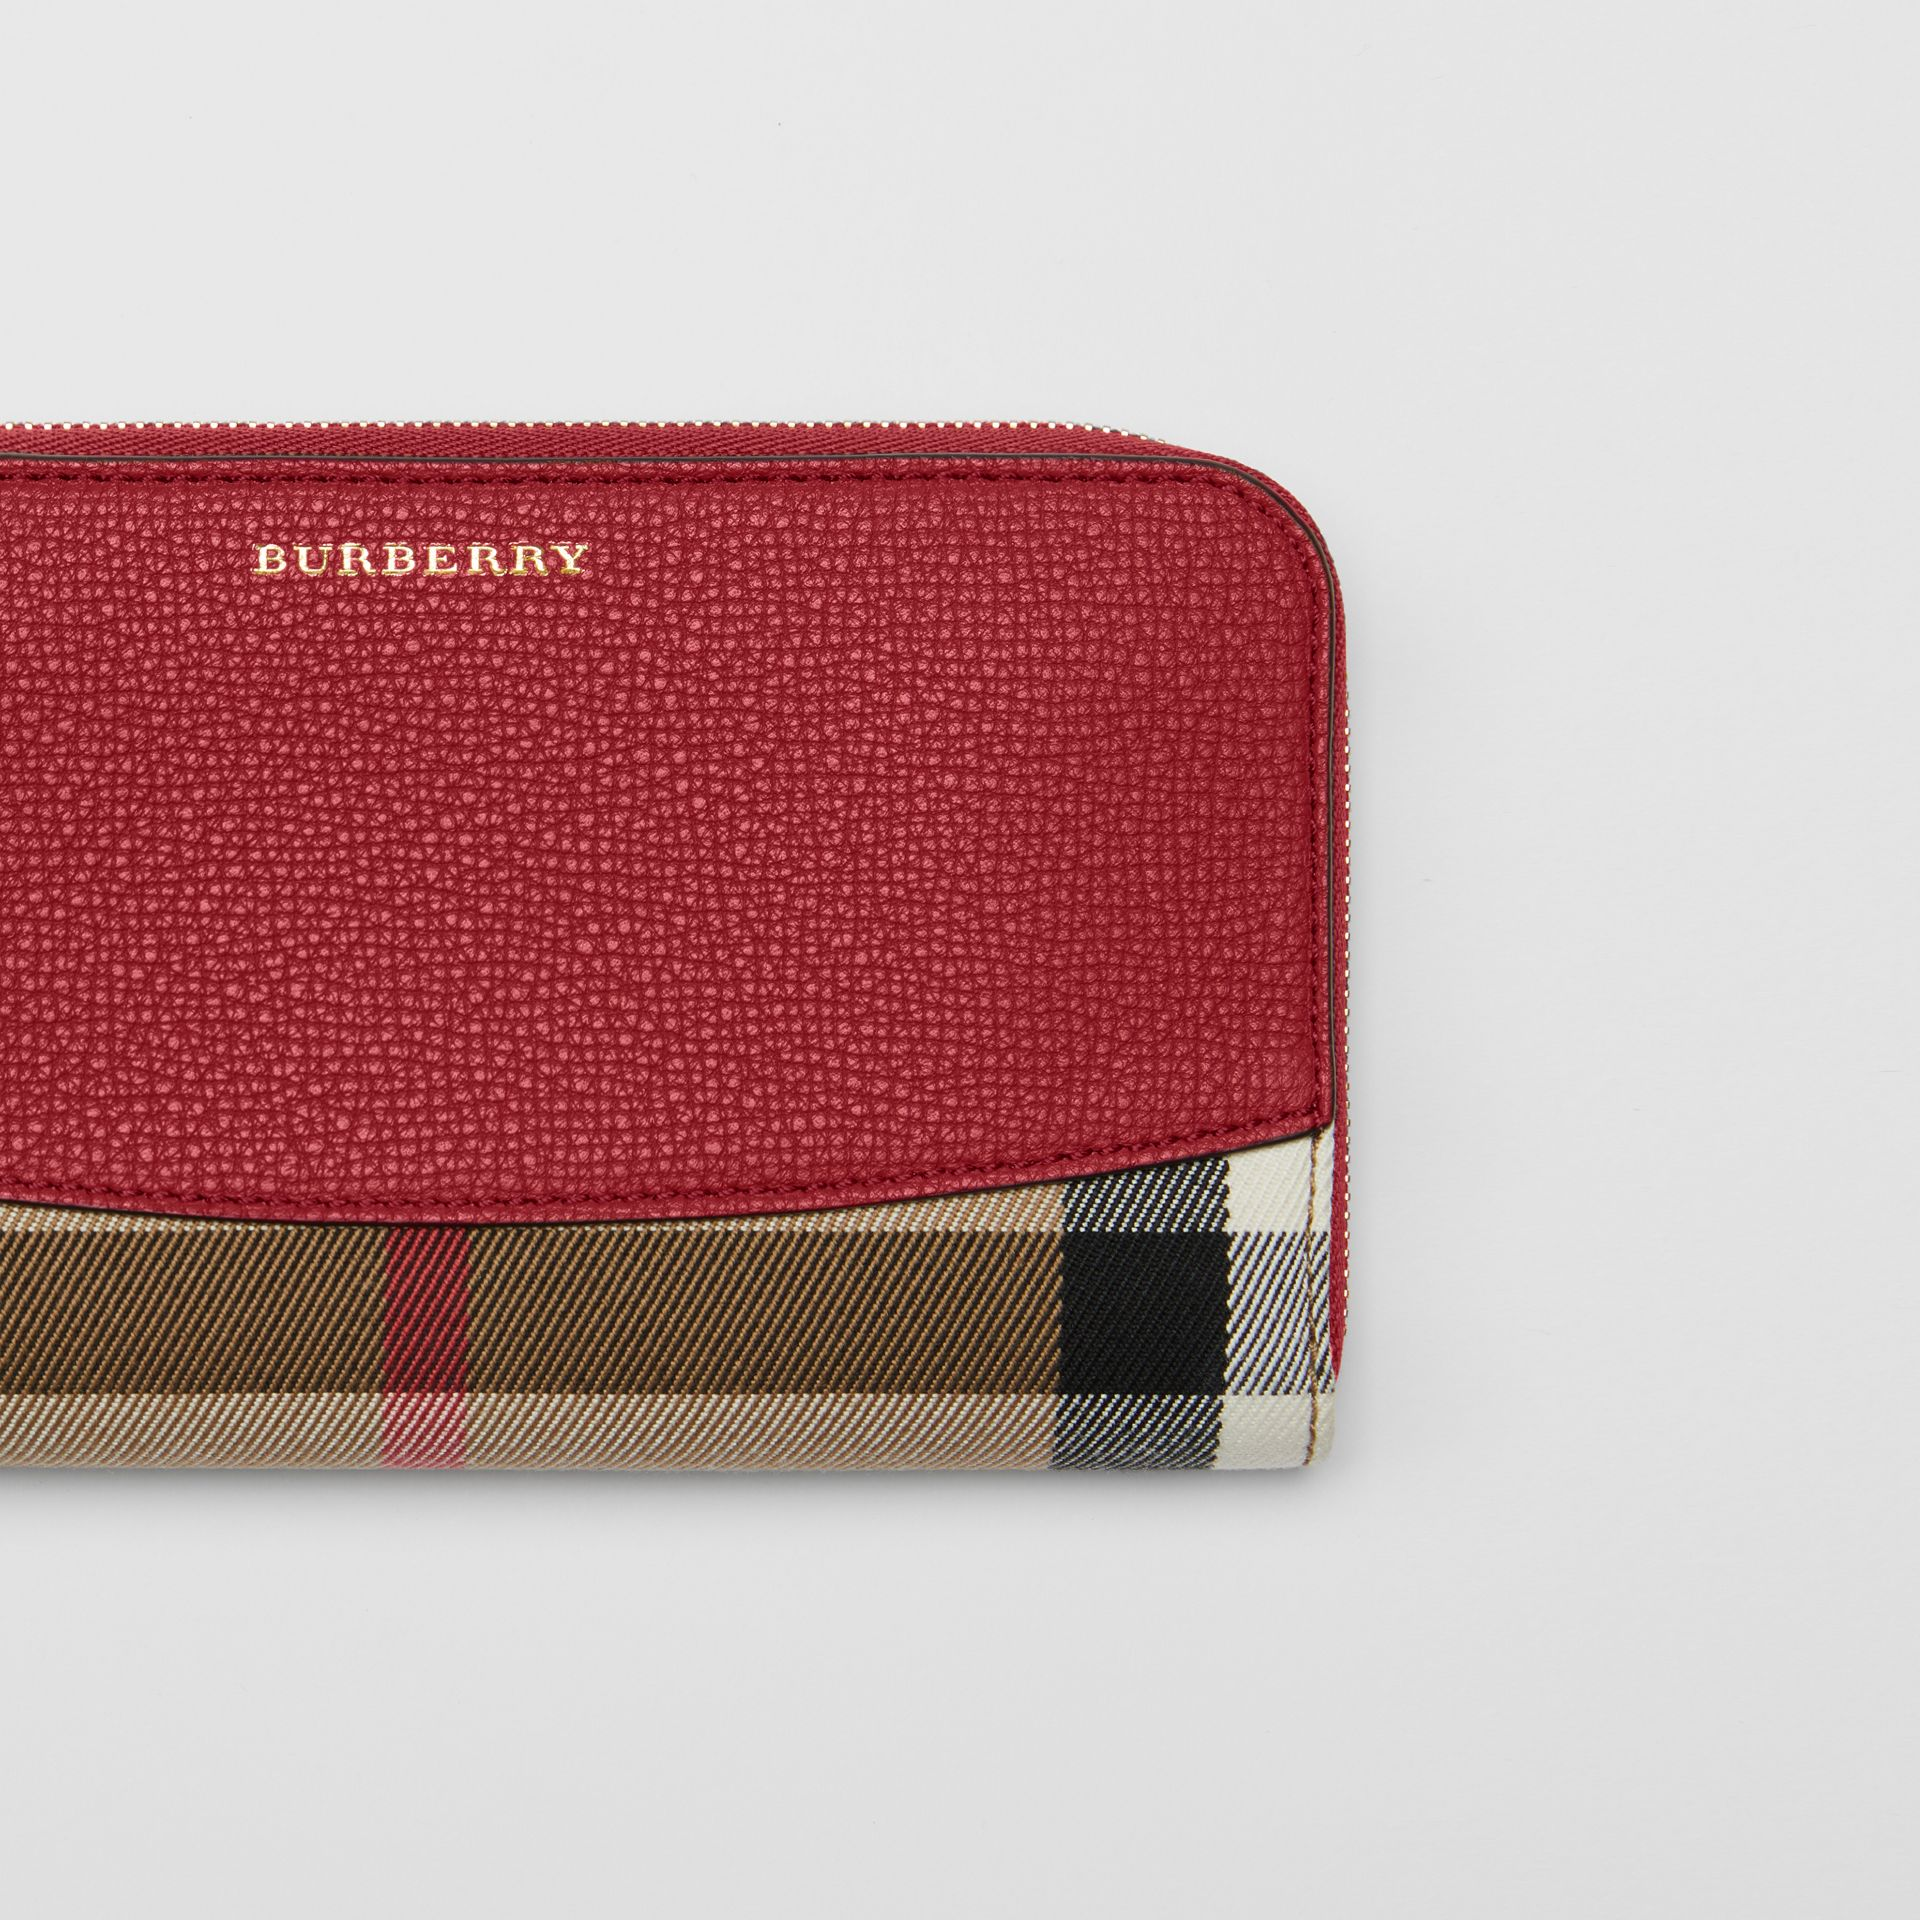 House Check and Leather Ziparound Wallet in Russet Red - Women | Burberry - gallery image 1